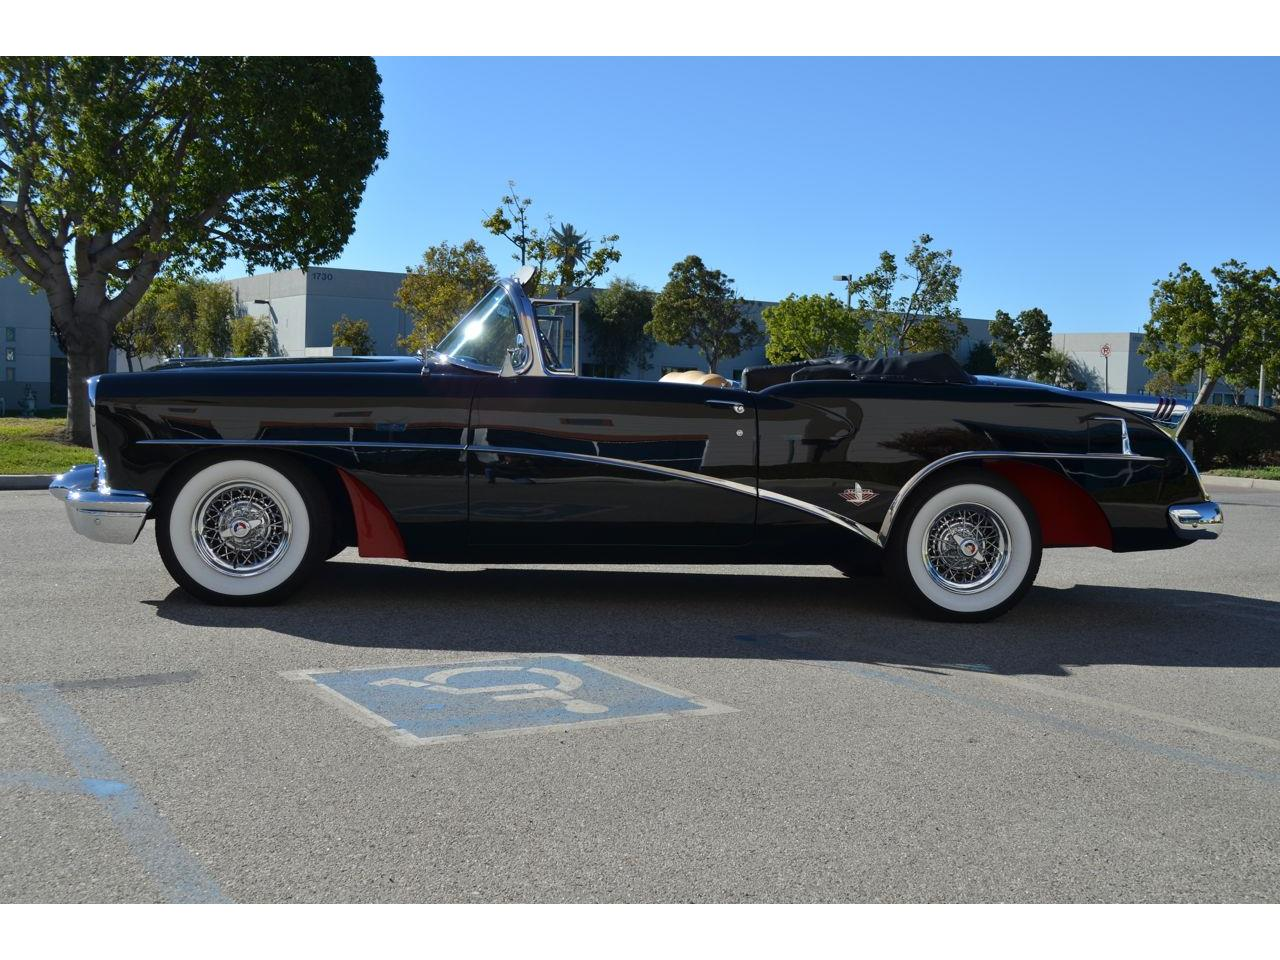 Large Picture of 1954 Buick Skylark located in Oxnard California - $119,000.00 Offered by Spoke Motors - LT5D